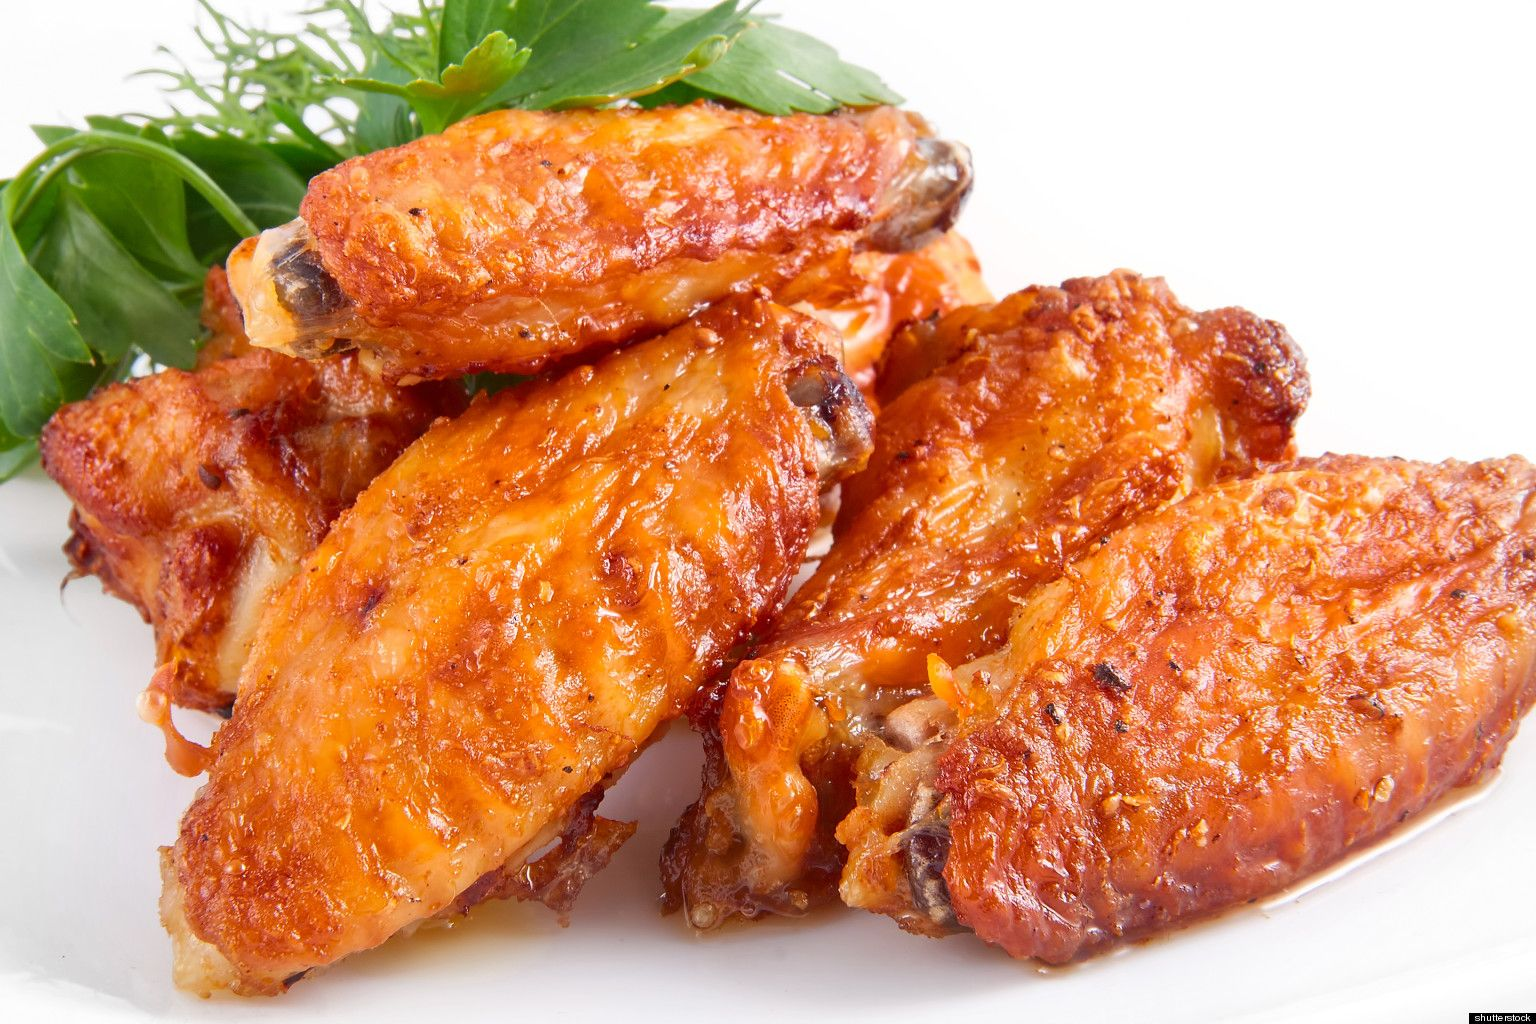 1536x1024 Chicken Wings-wallpaper-26.jpg